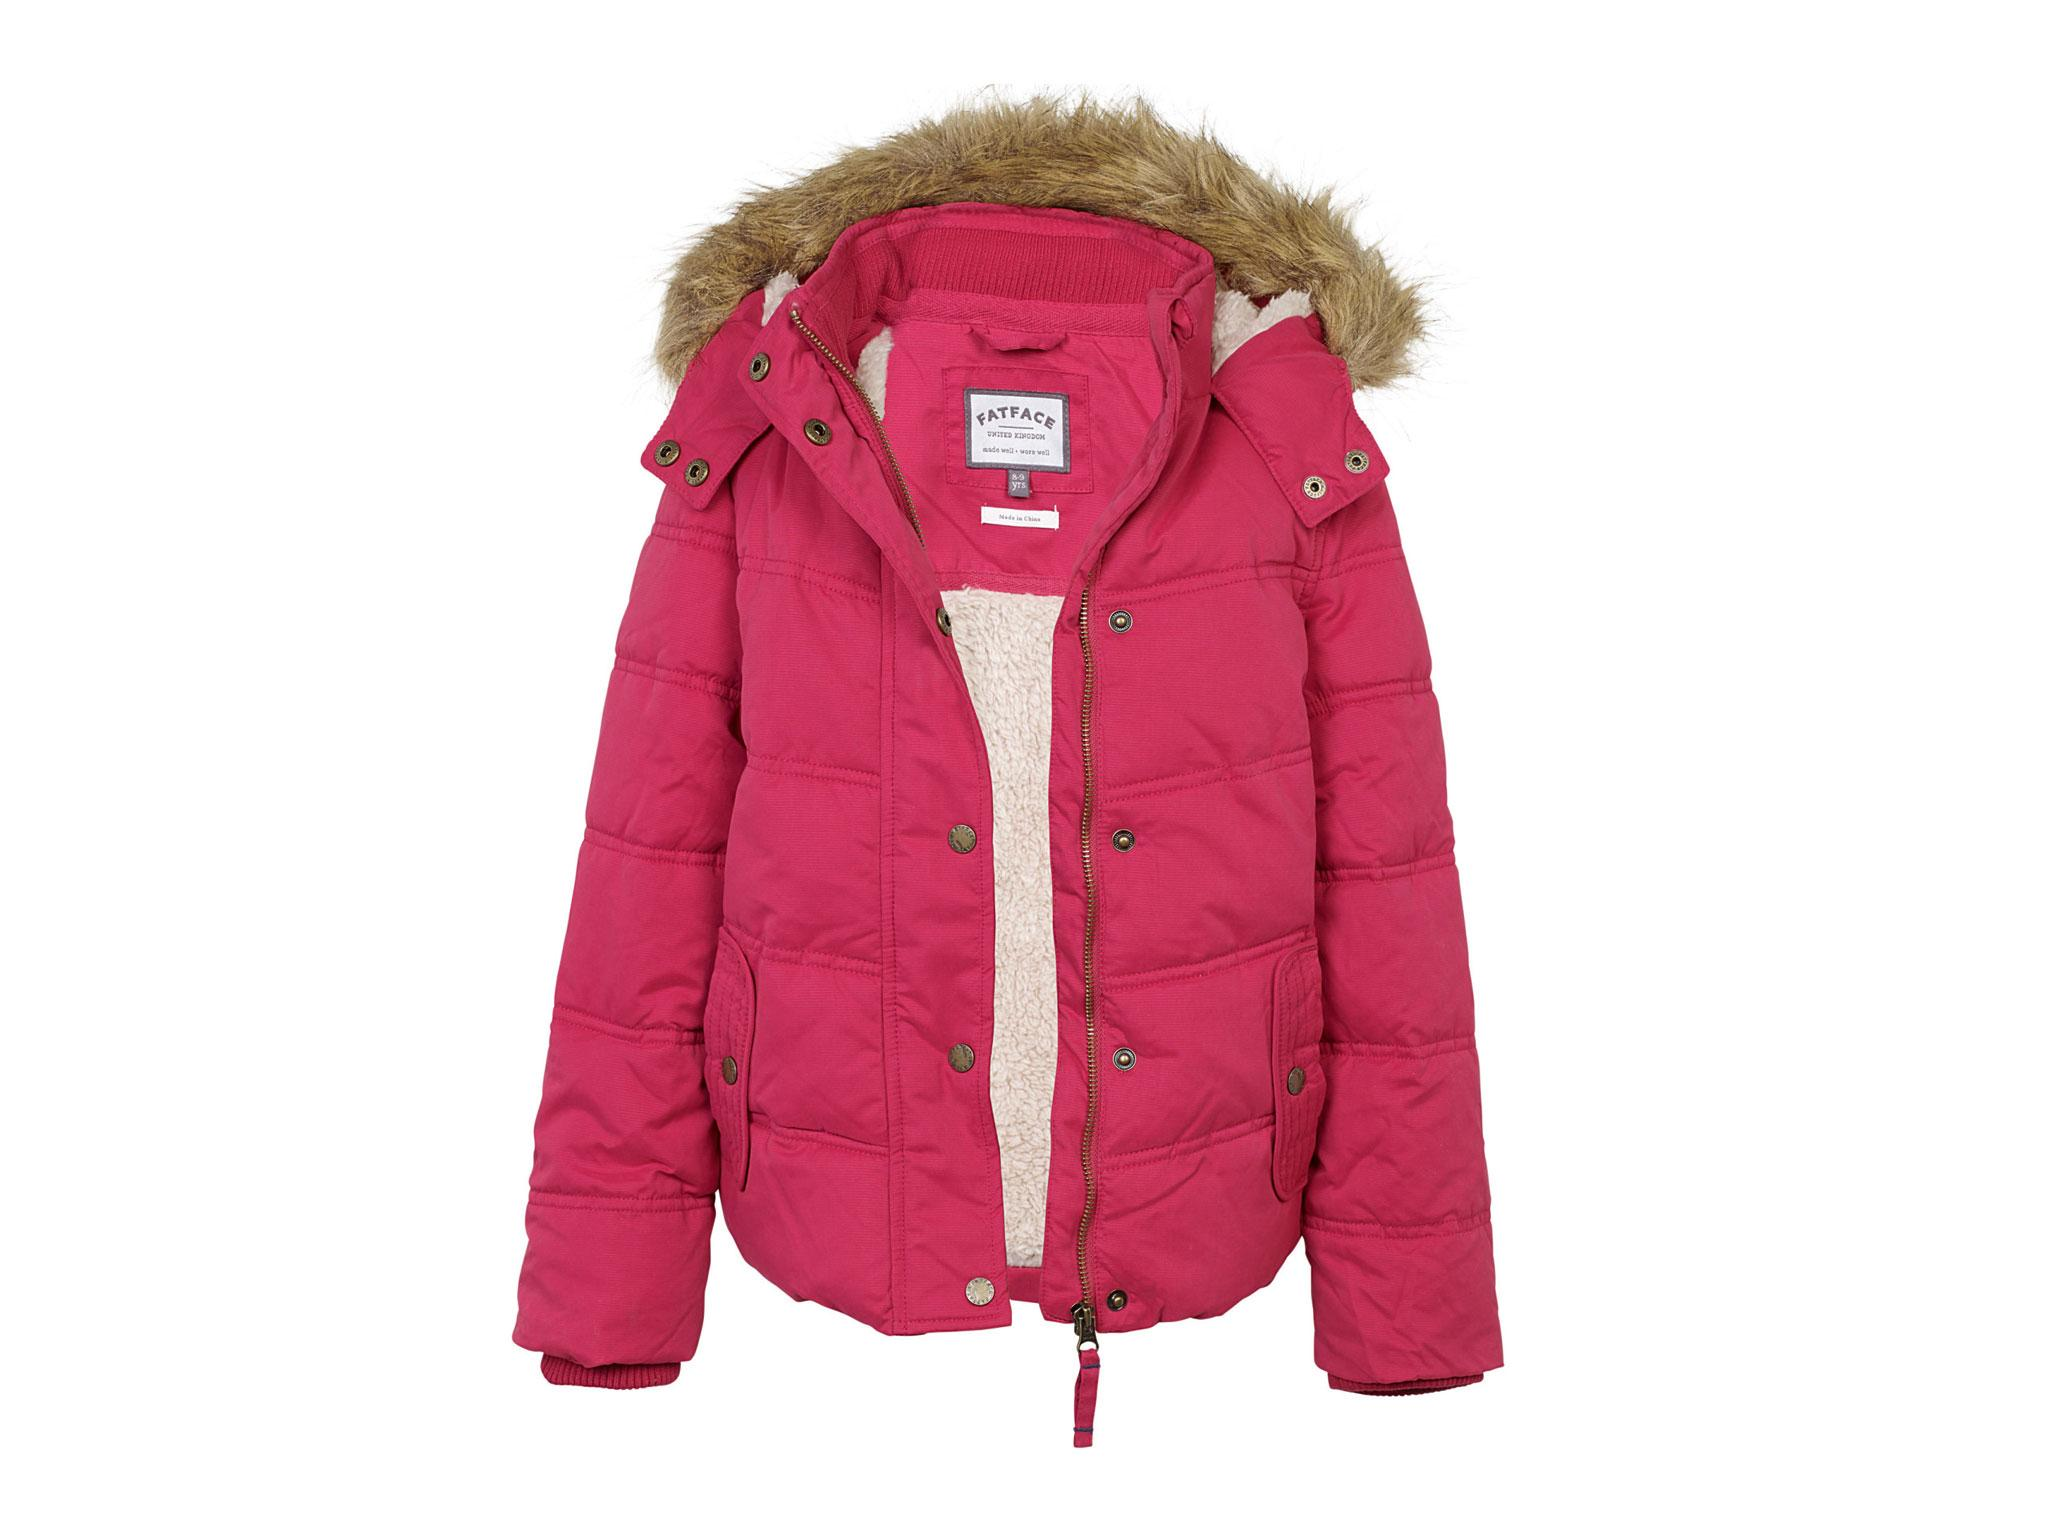 9b989fd44 Available in blue or pink, this shower-resistant parka looks great. The  soft lining through the body and hood, together with the faux fur hood  trim, ...